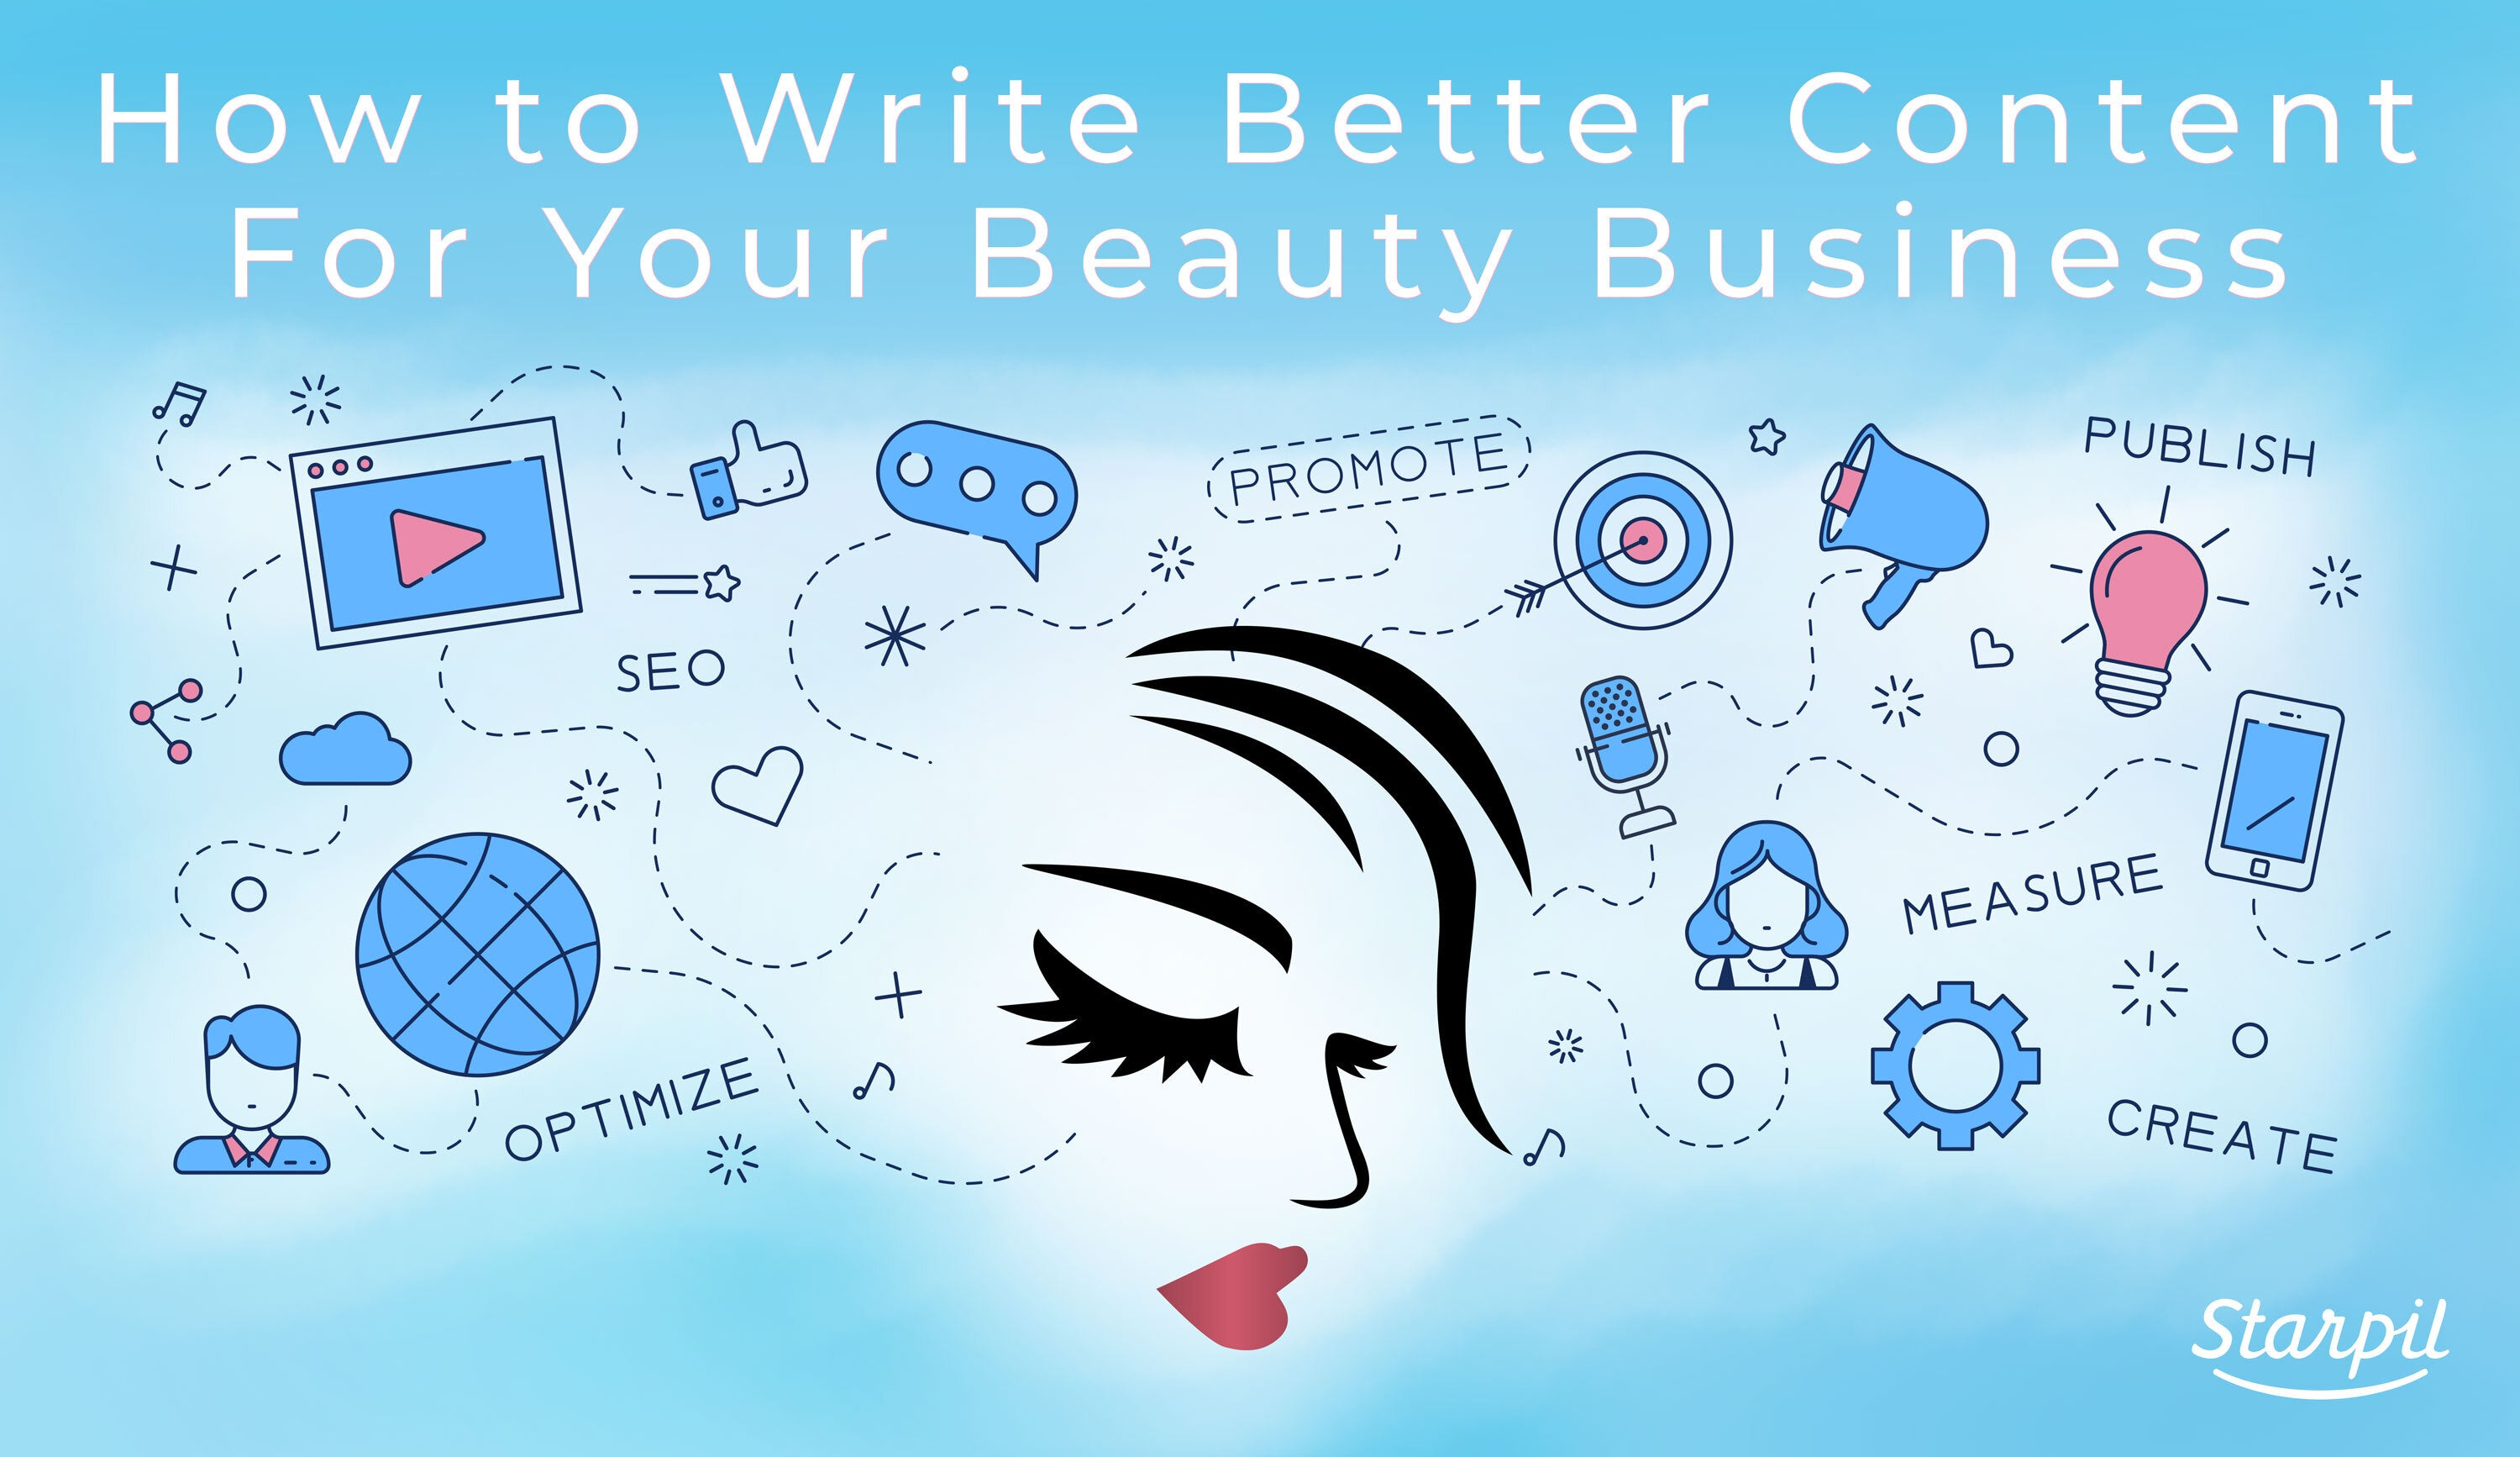 How to Write Better Content for Your Beauty Business